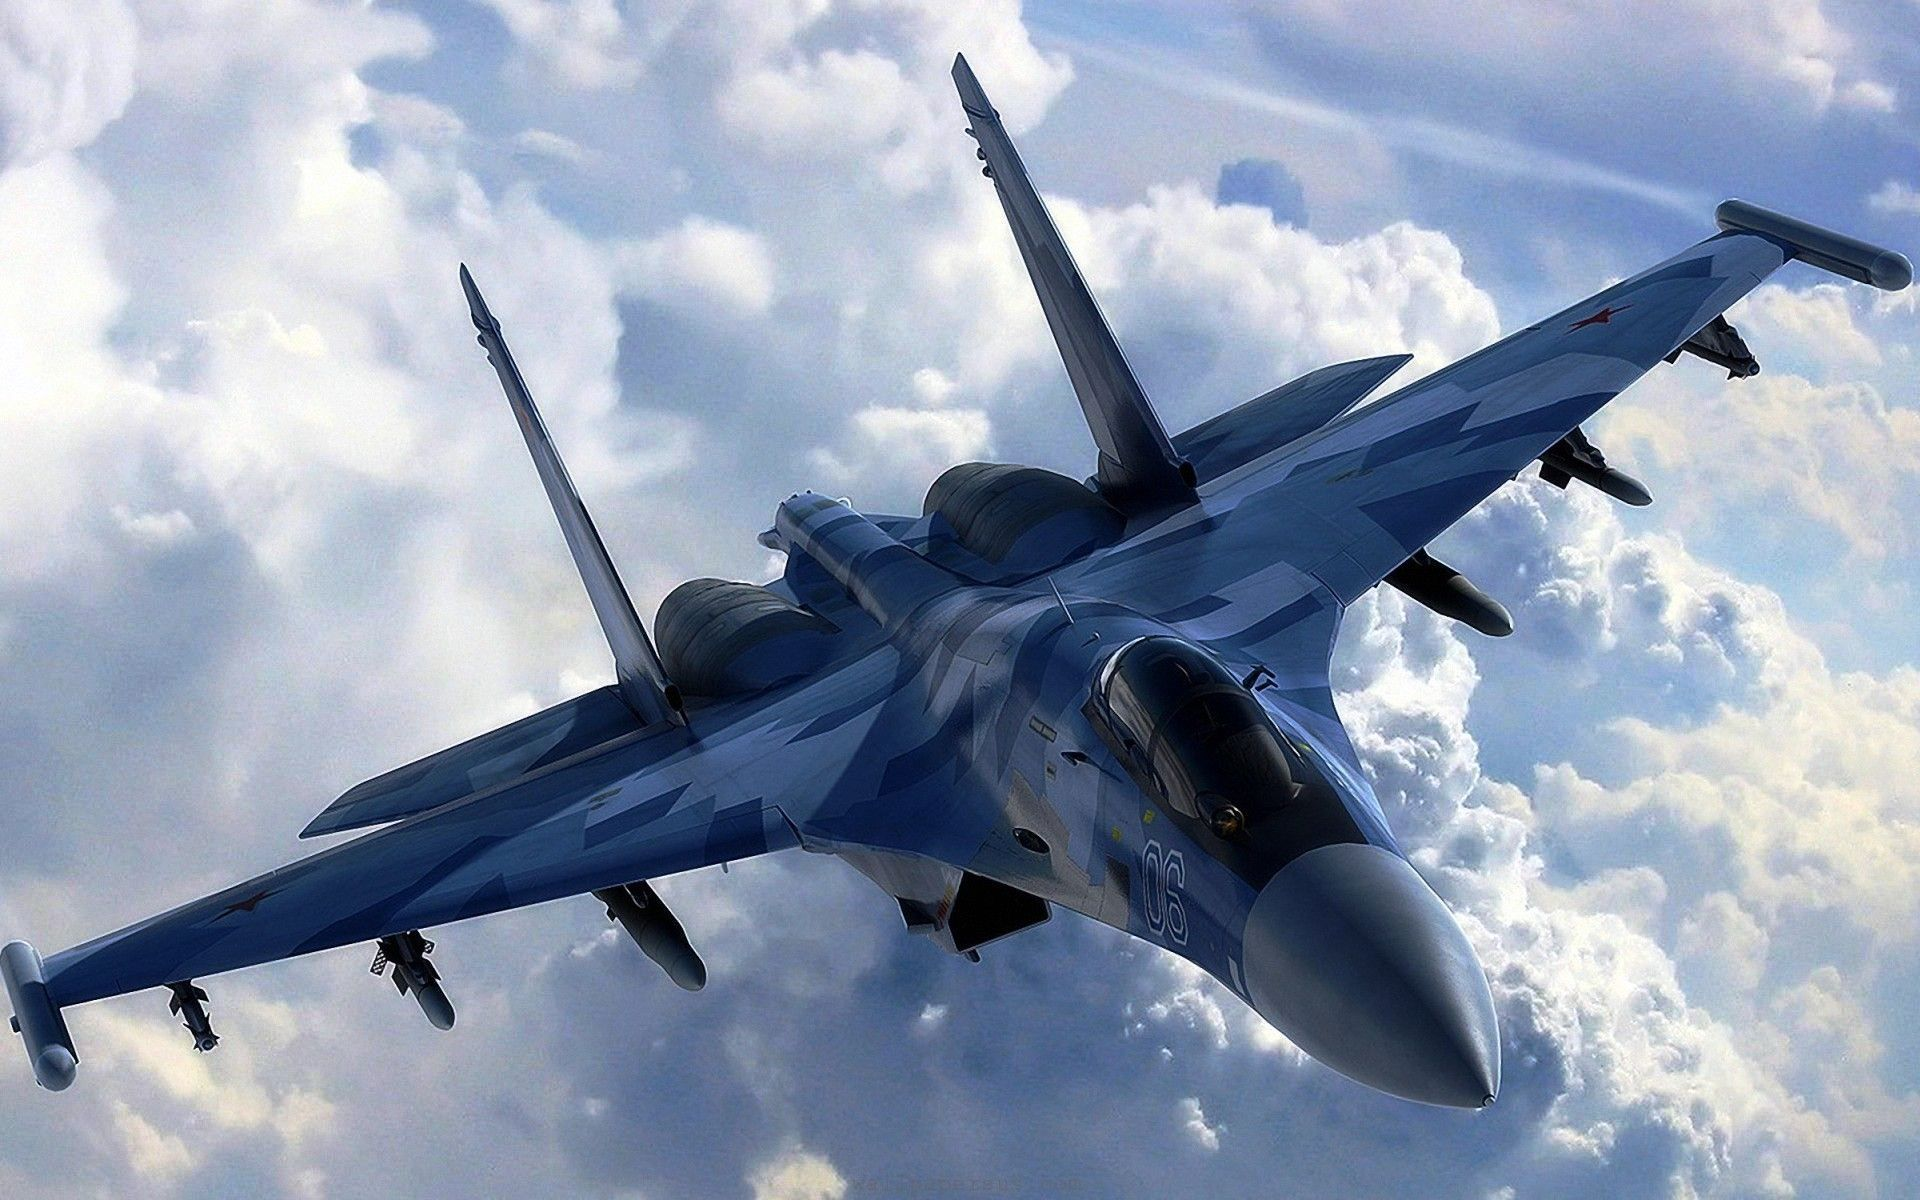 Sukhoi t 50 jet fighter aircraft wallpaper in high - Aeroplane hd wallpapers for mobile ...